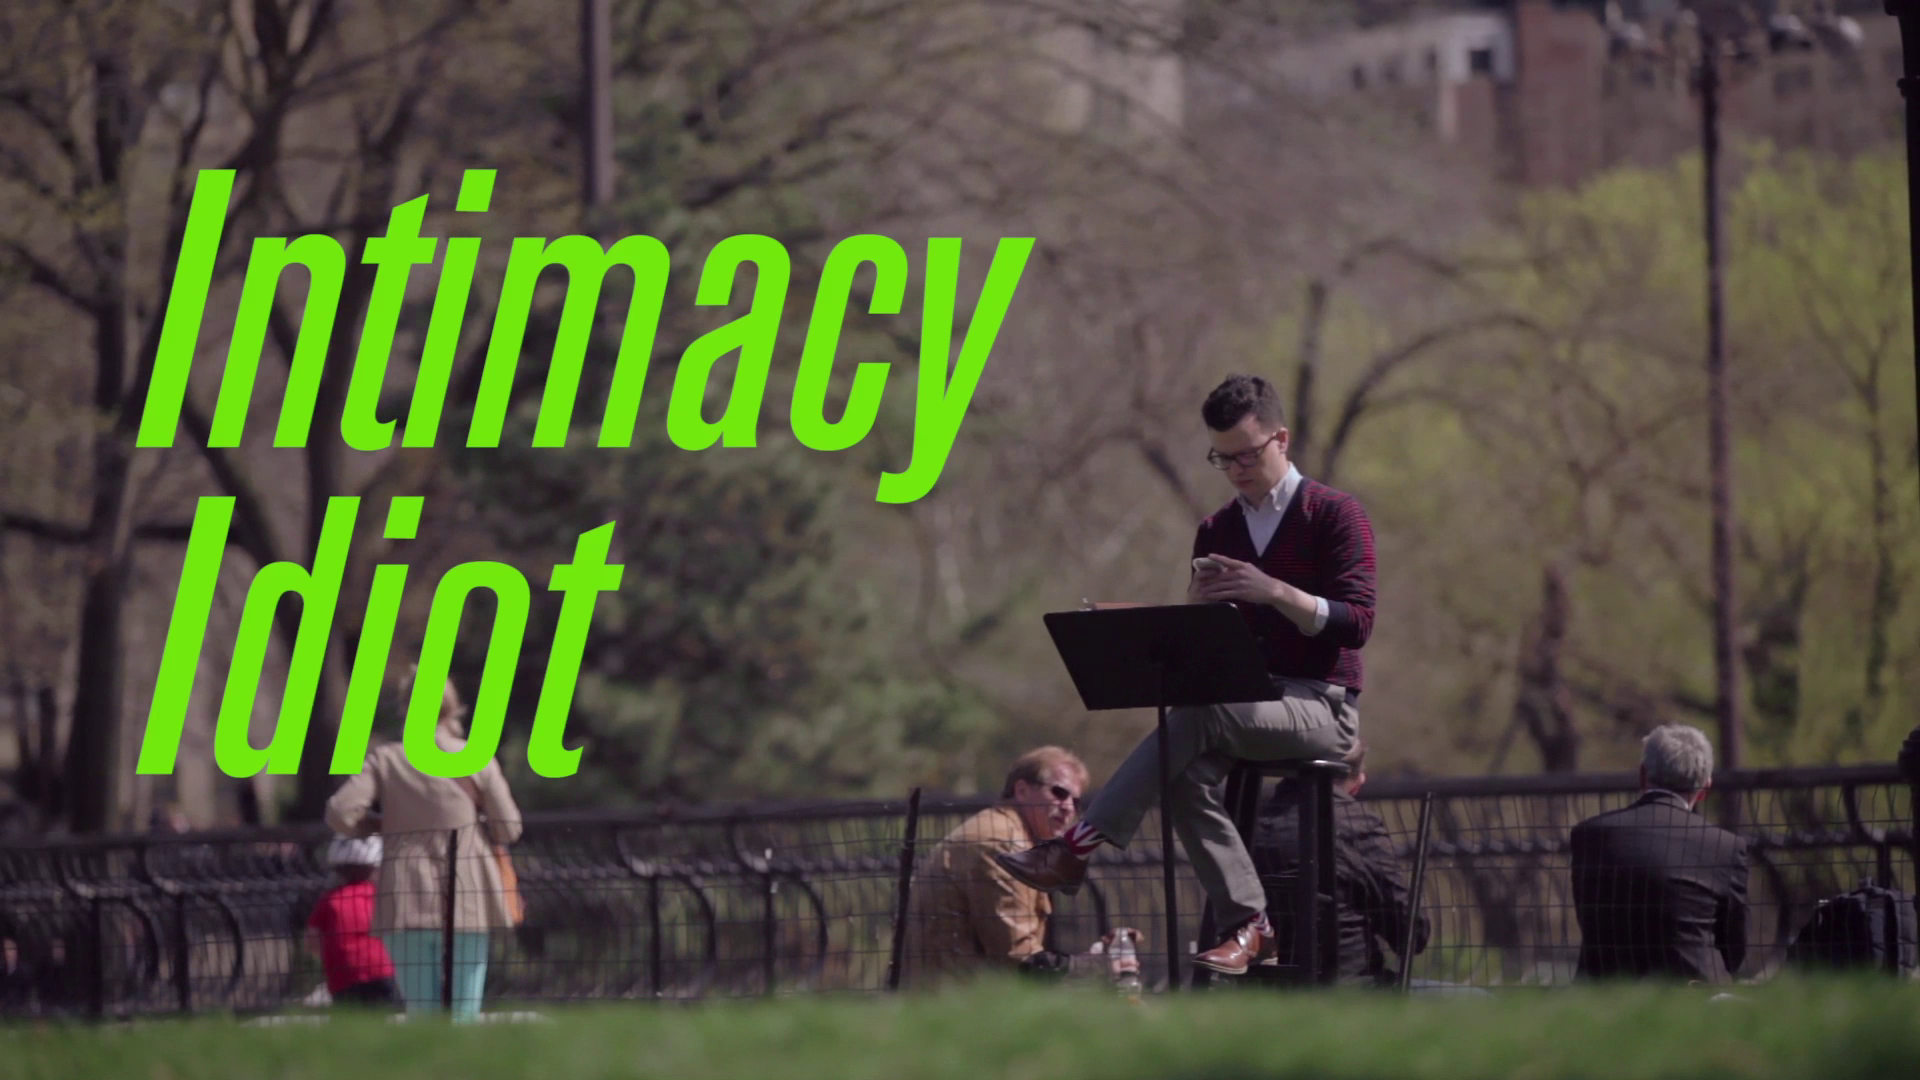 'Intimacy Idiot': The Horny New York Poem